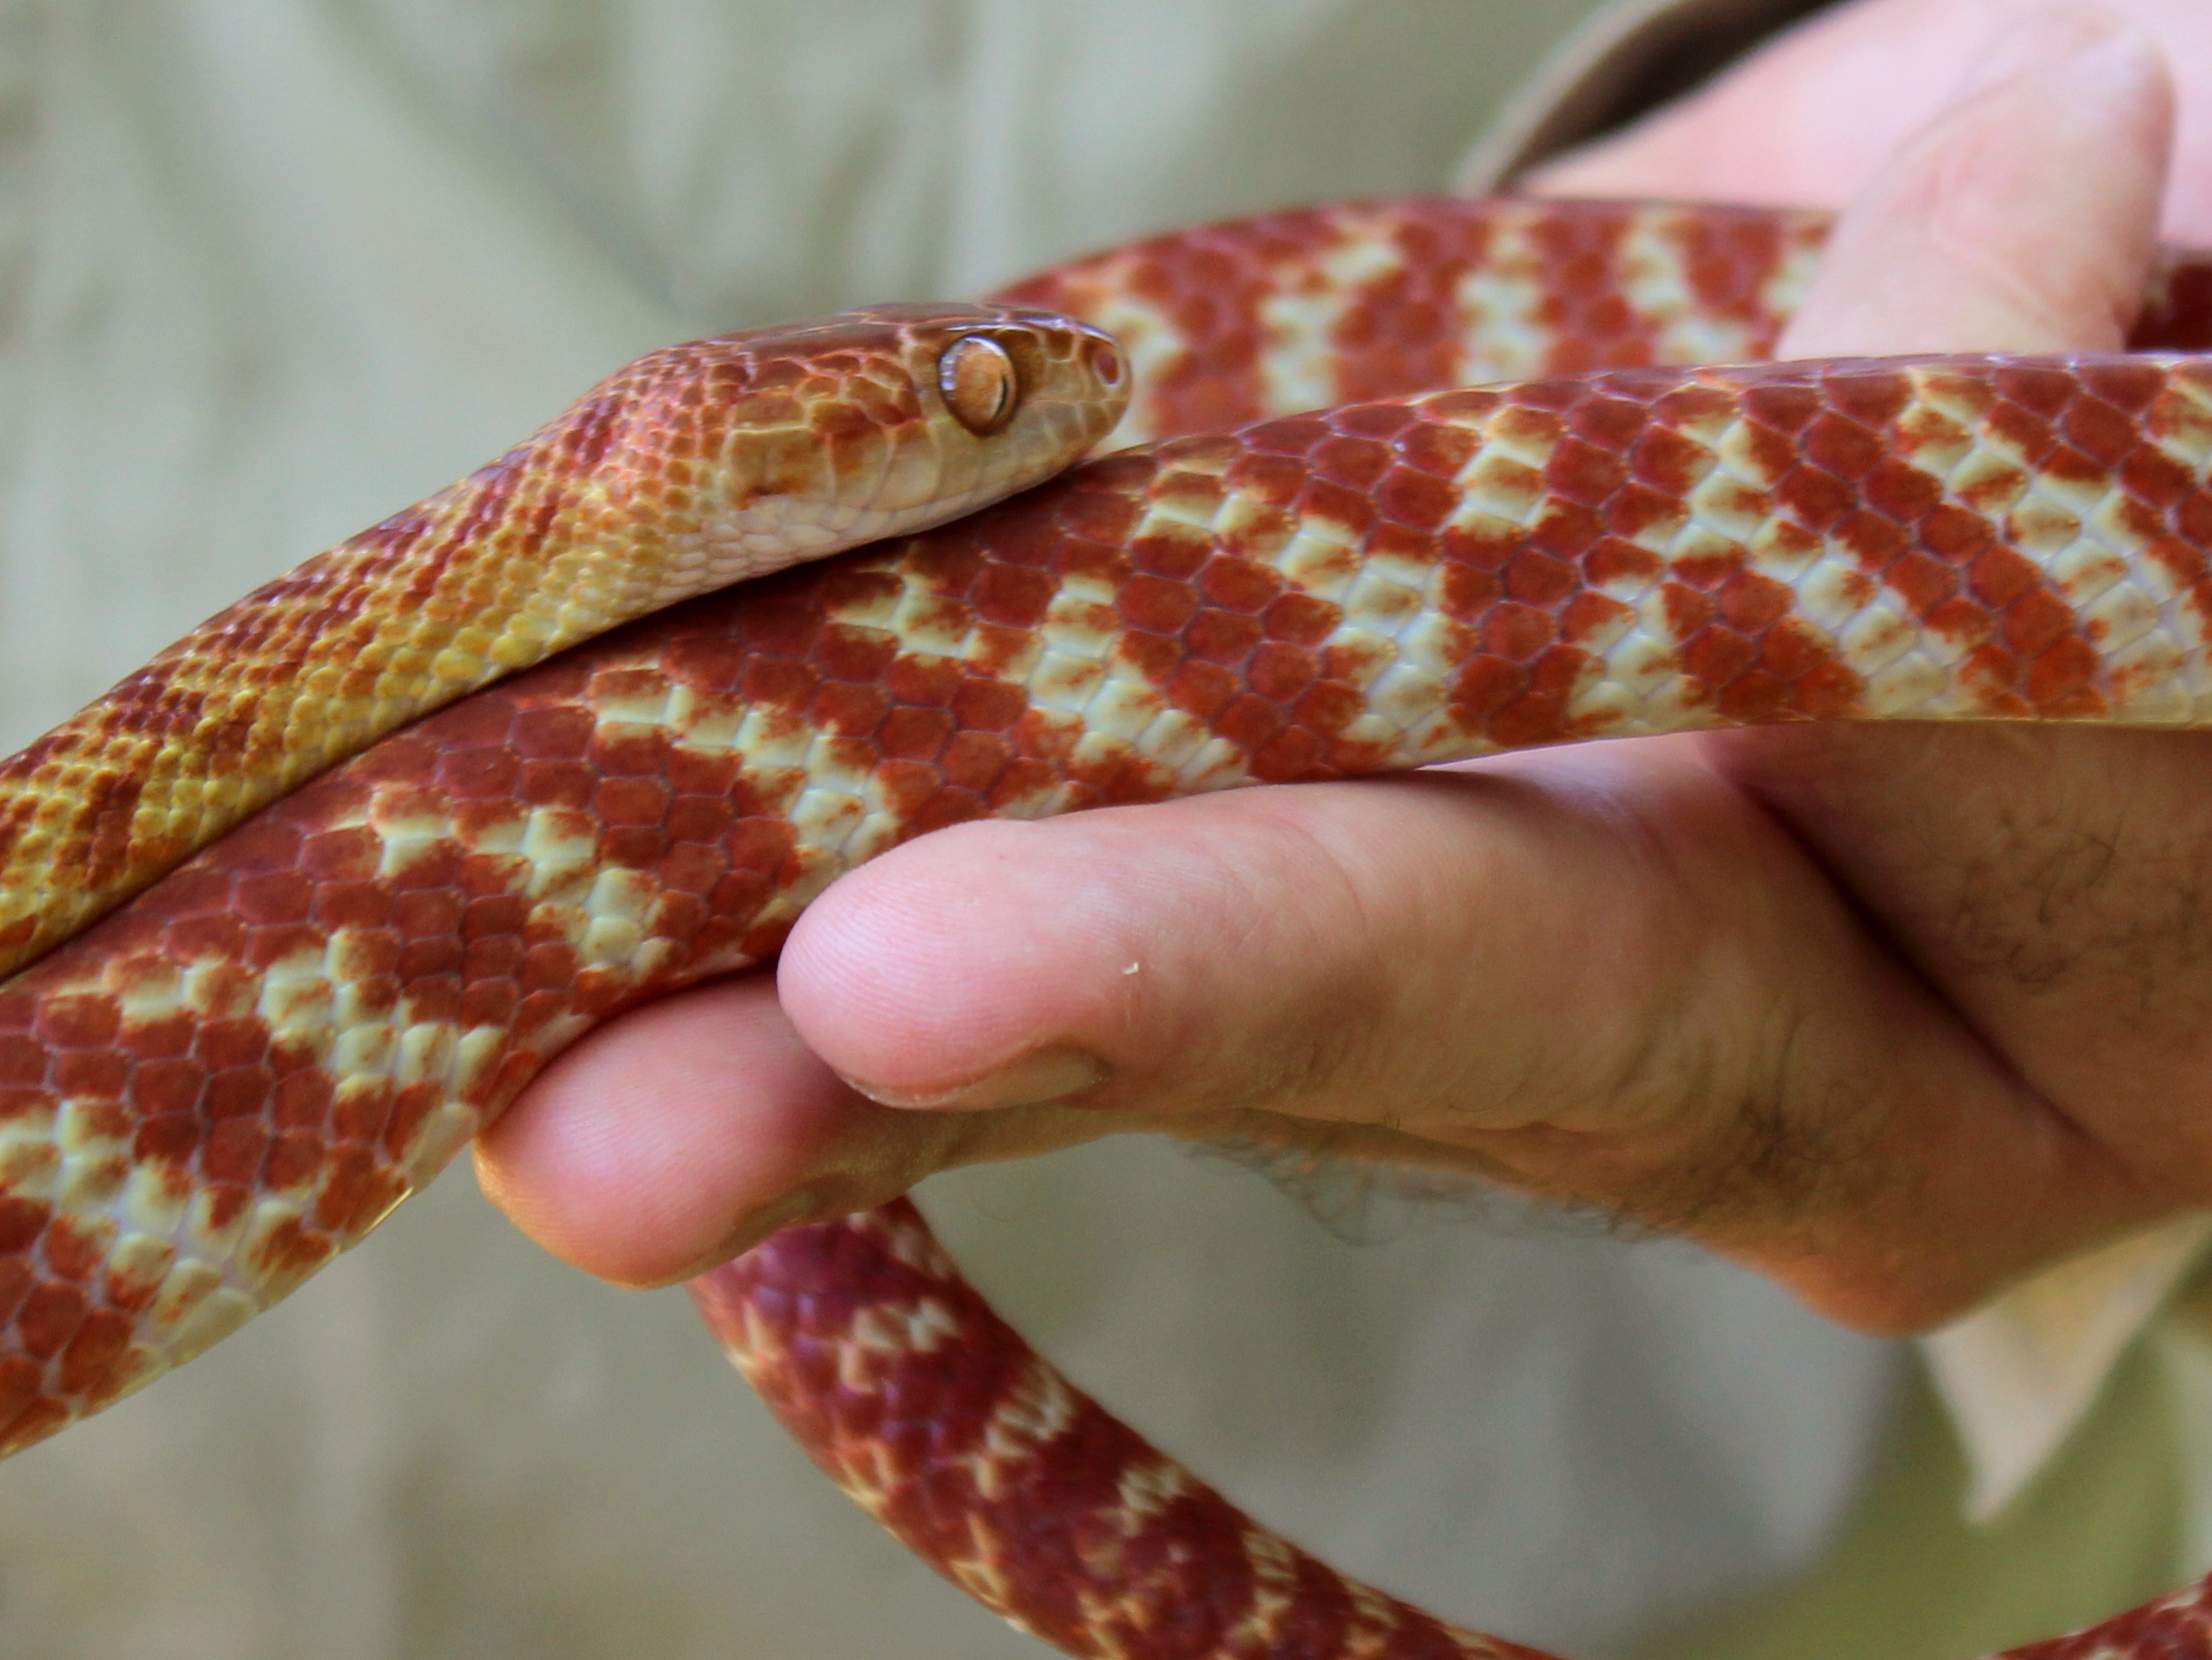 Brown Tree Snake in hand